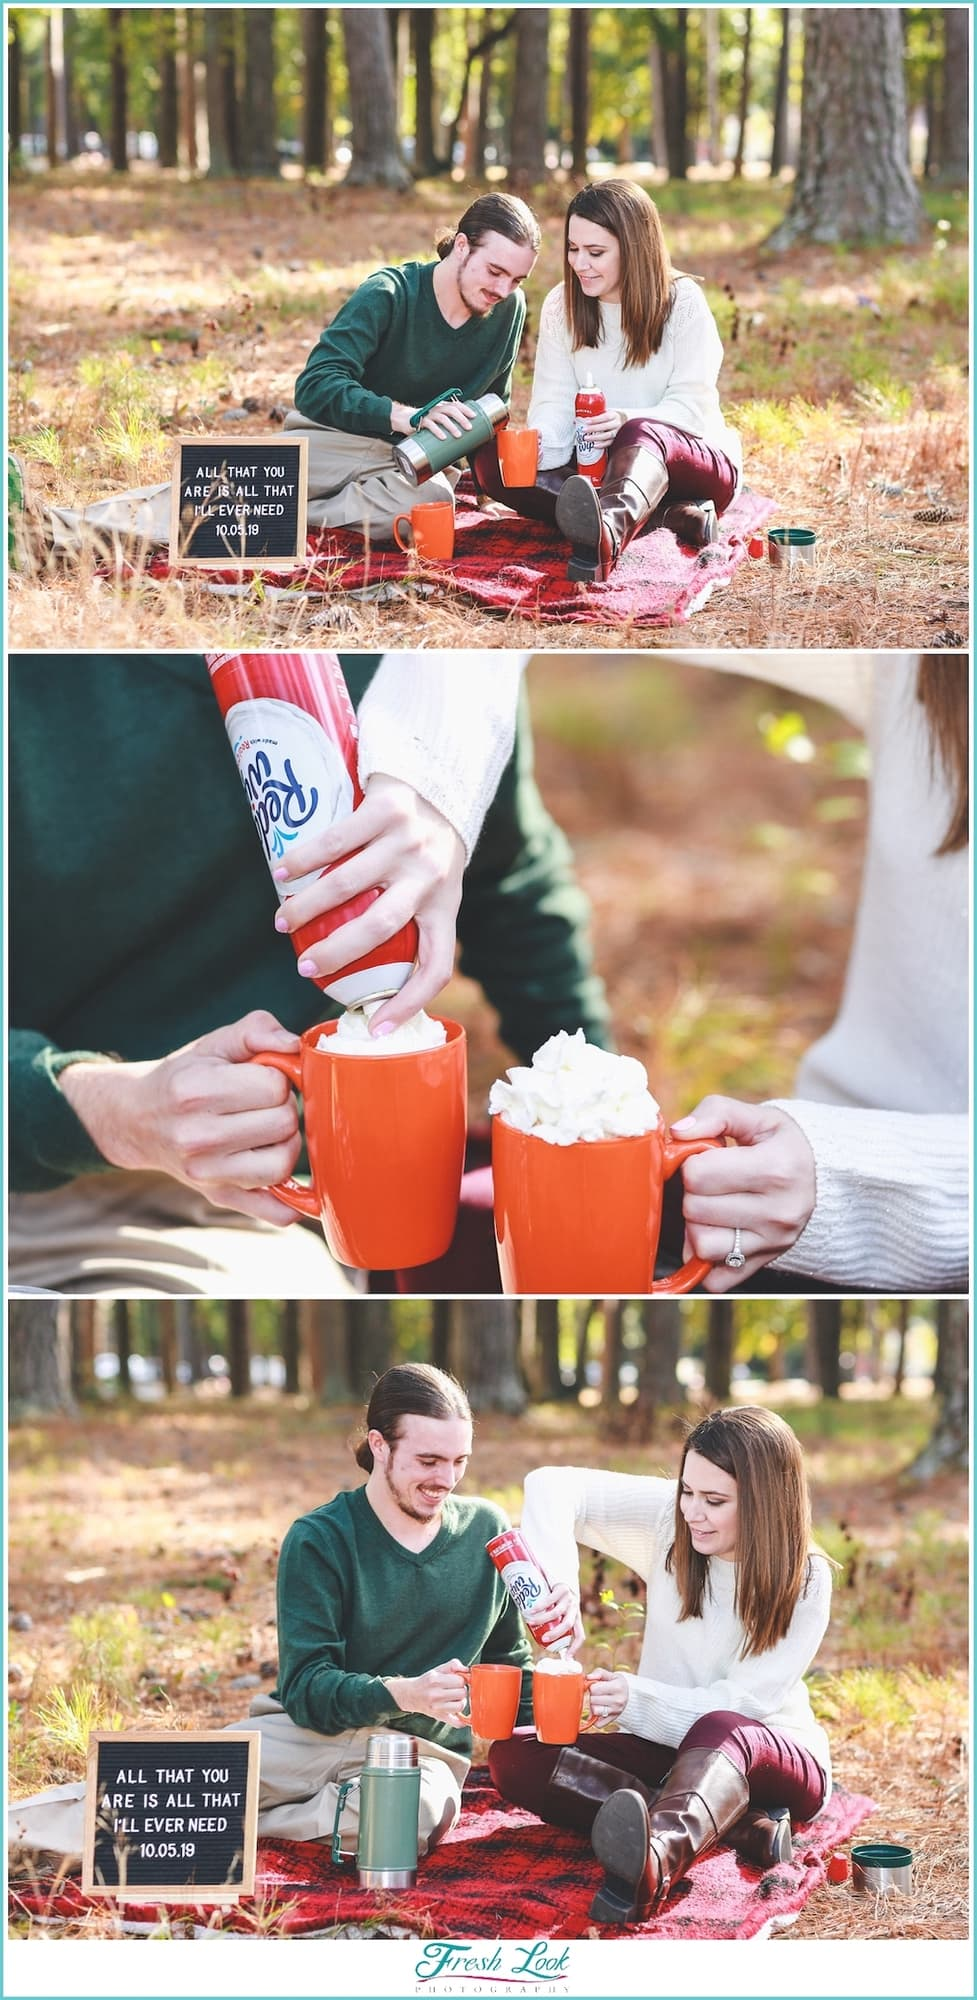 making hot chocolate together